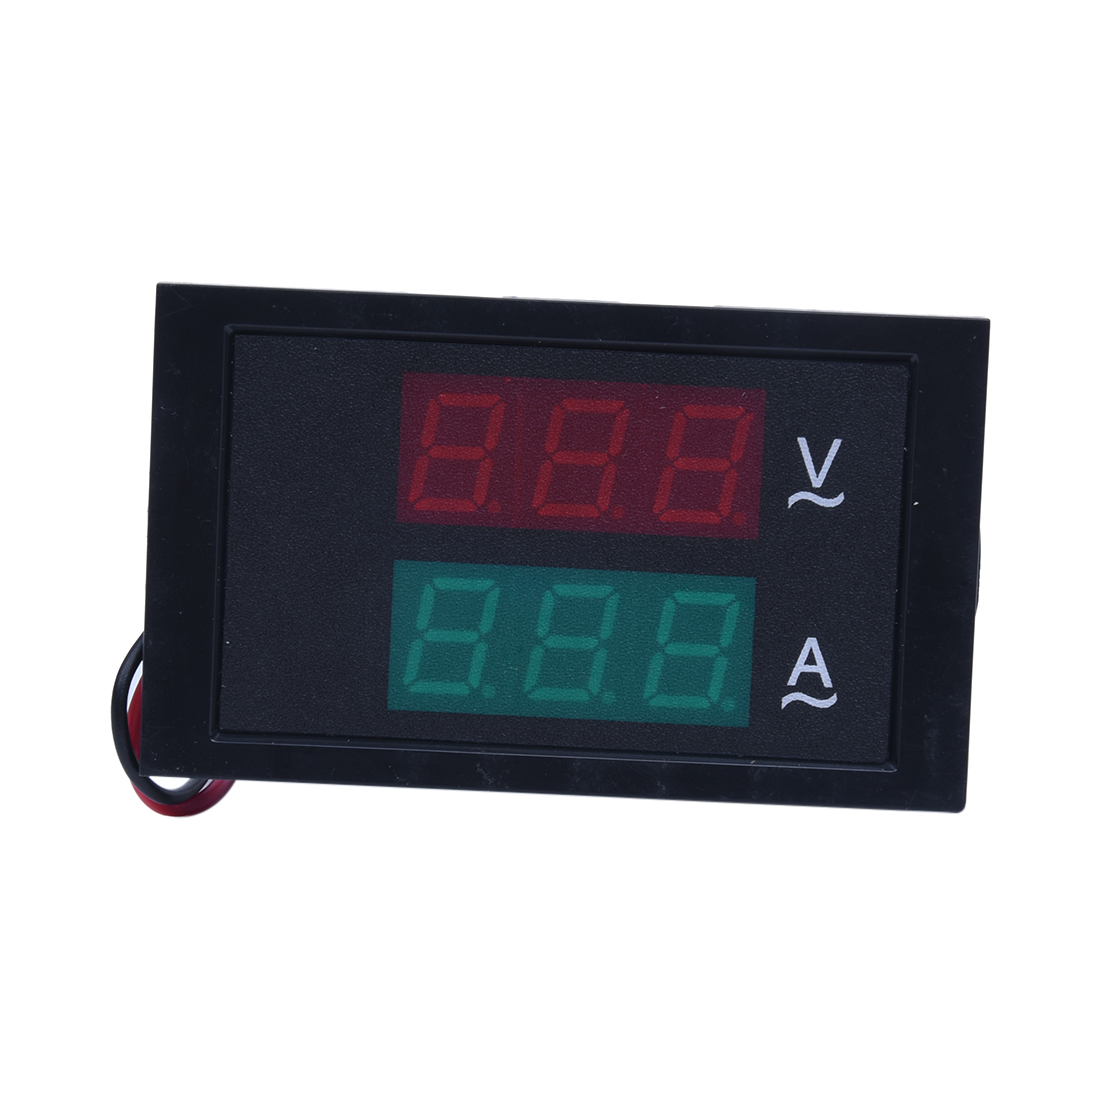 led digital volt amp panel meter voltmeter ammeter ac 80. Black Bedroom Furniture Sets. Home Design Ideas